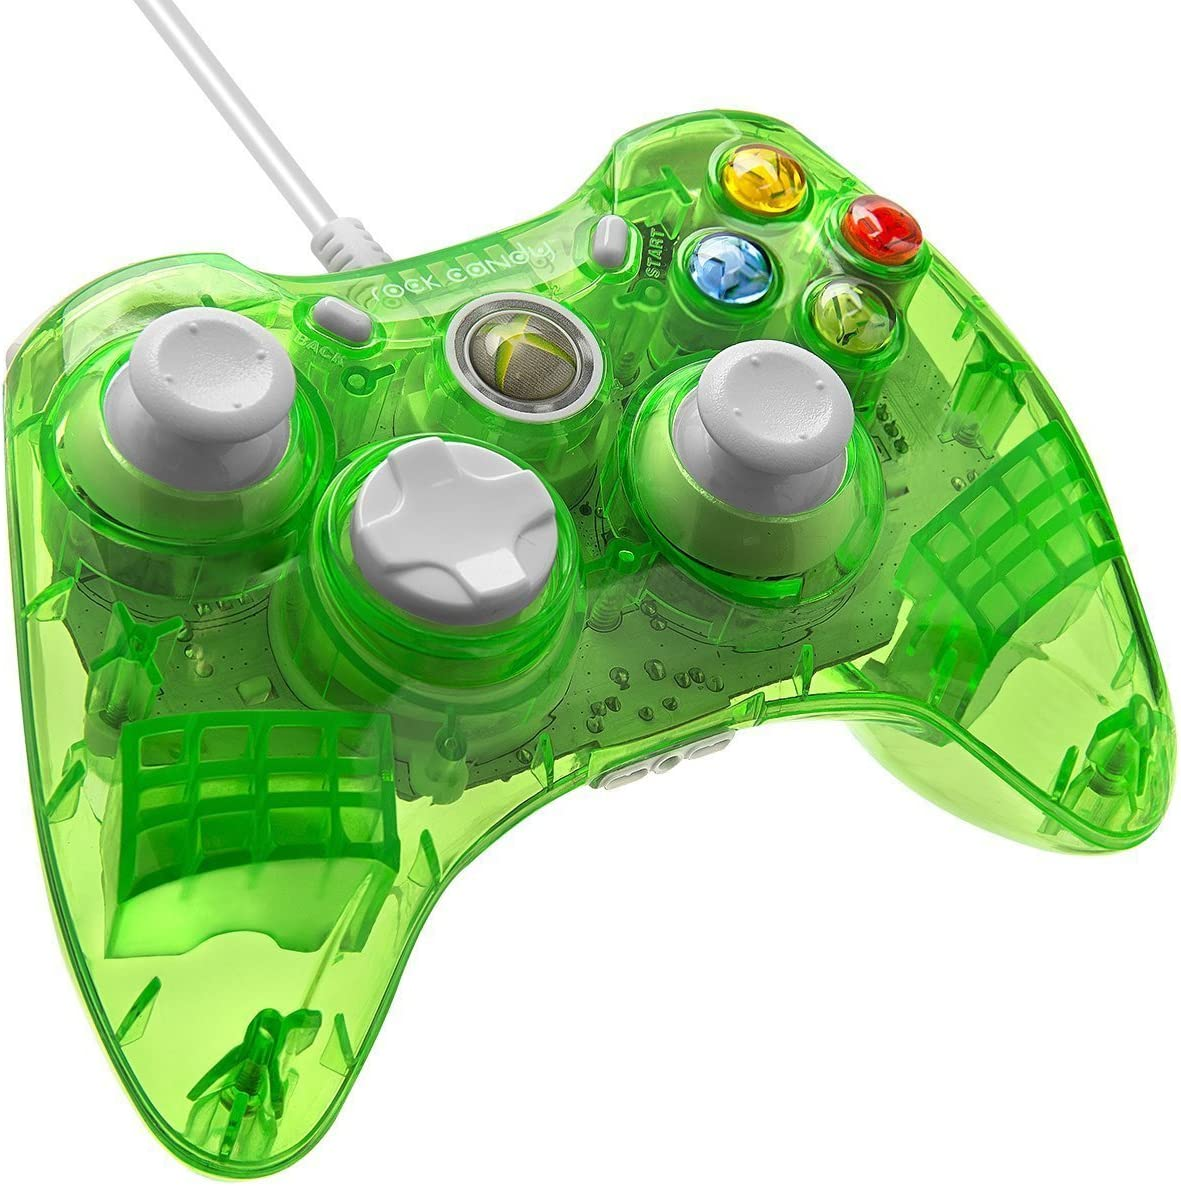 Amazon com: PDP Rock Candy Wired Controller for Xbox 360 - Aqualime